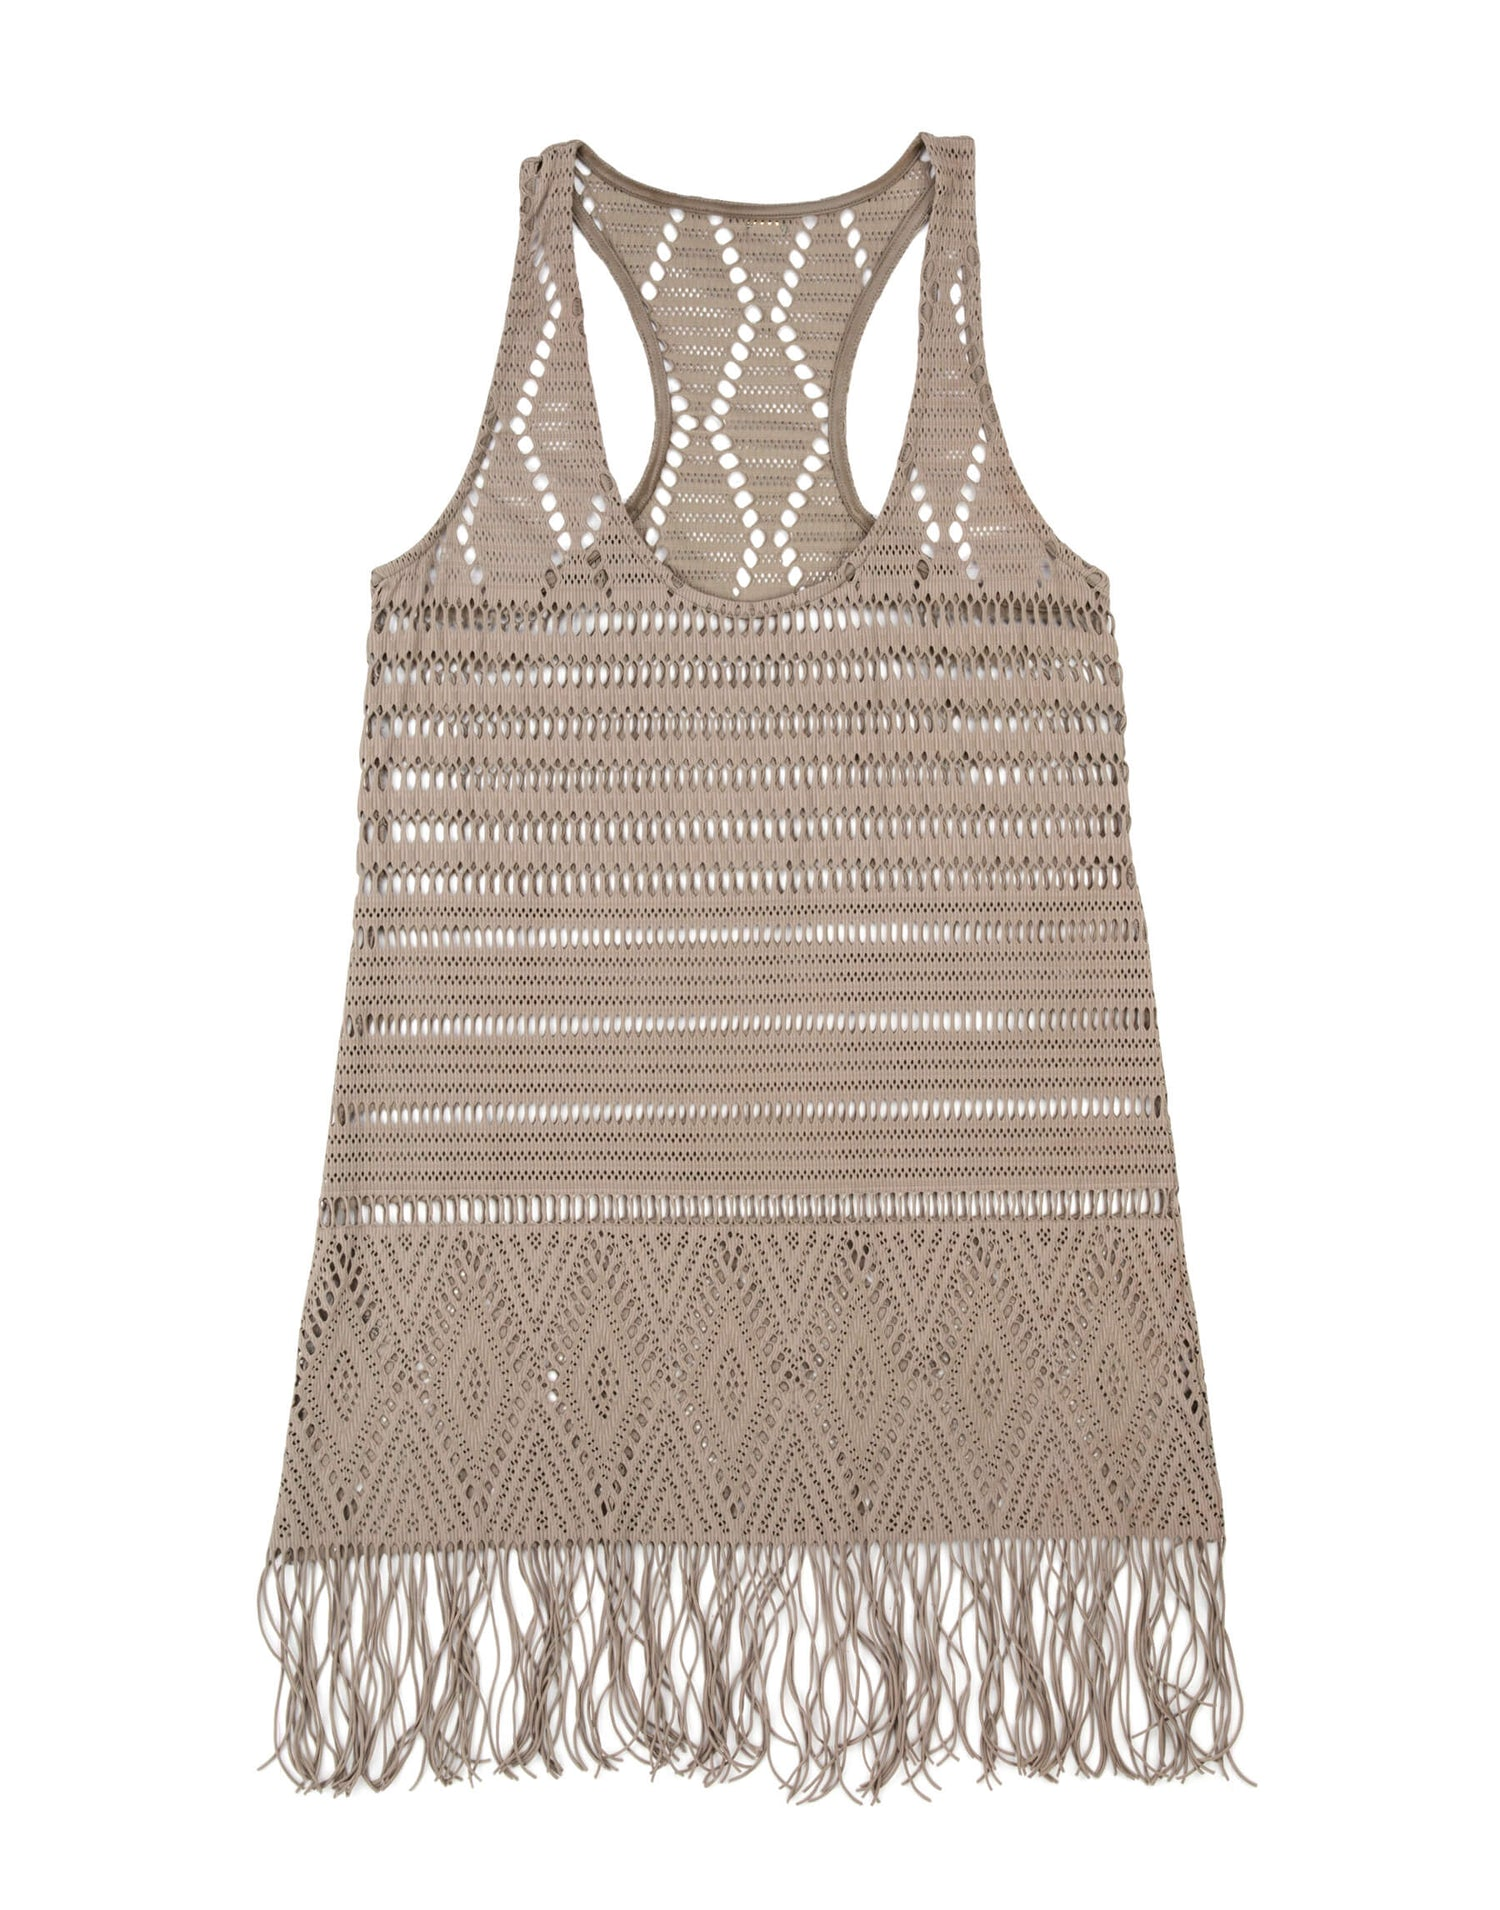 Desert Dreamer Fringe Dress